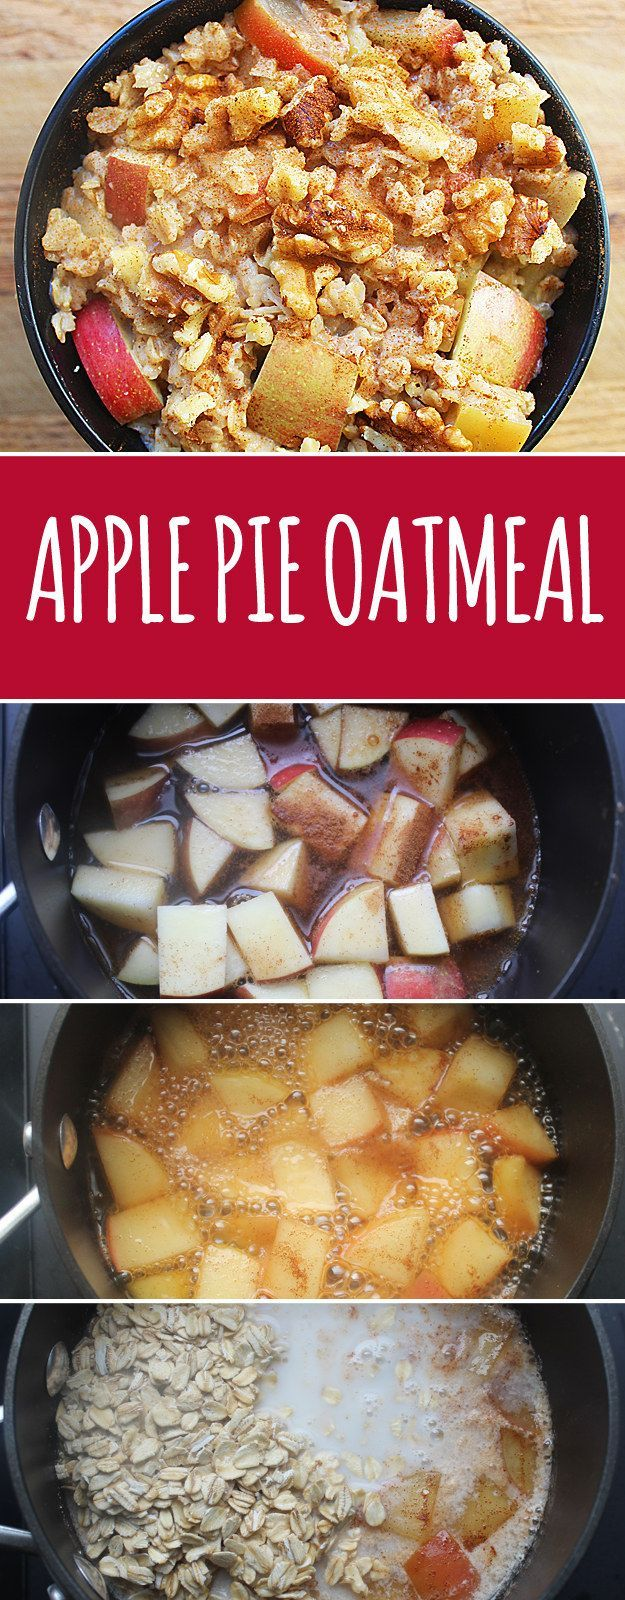 Simmer chopped fruit in apple juice, then add your oats to make oatmeal that tastes like pie.                                                                                                                                                                                 More